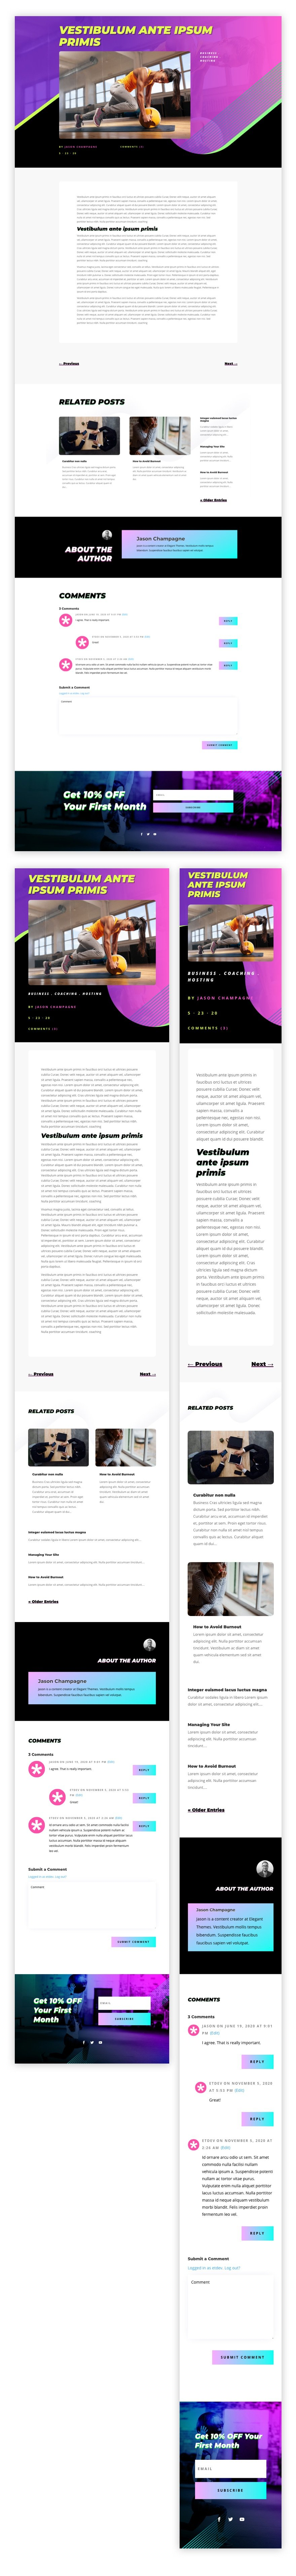 get-a-free-blog-post-template-for-divis-virtual-fitness-layout-pack Get a FREE Blog Post Template for Divi's Virtual Fitness Layout Pack